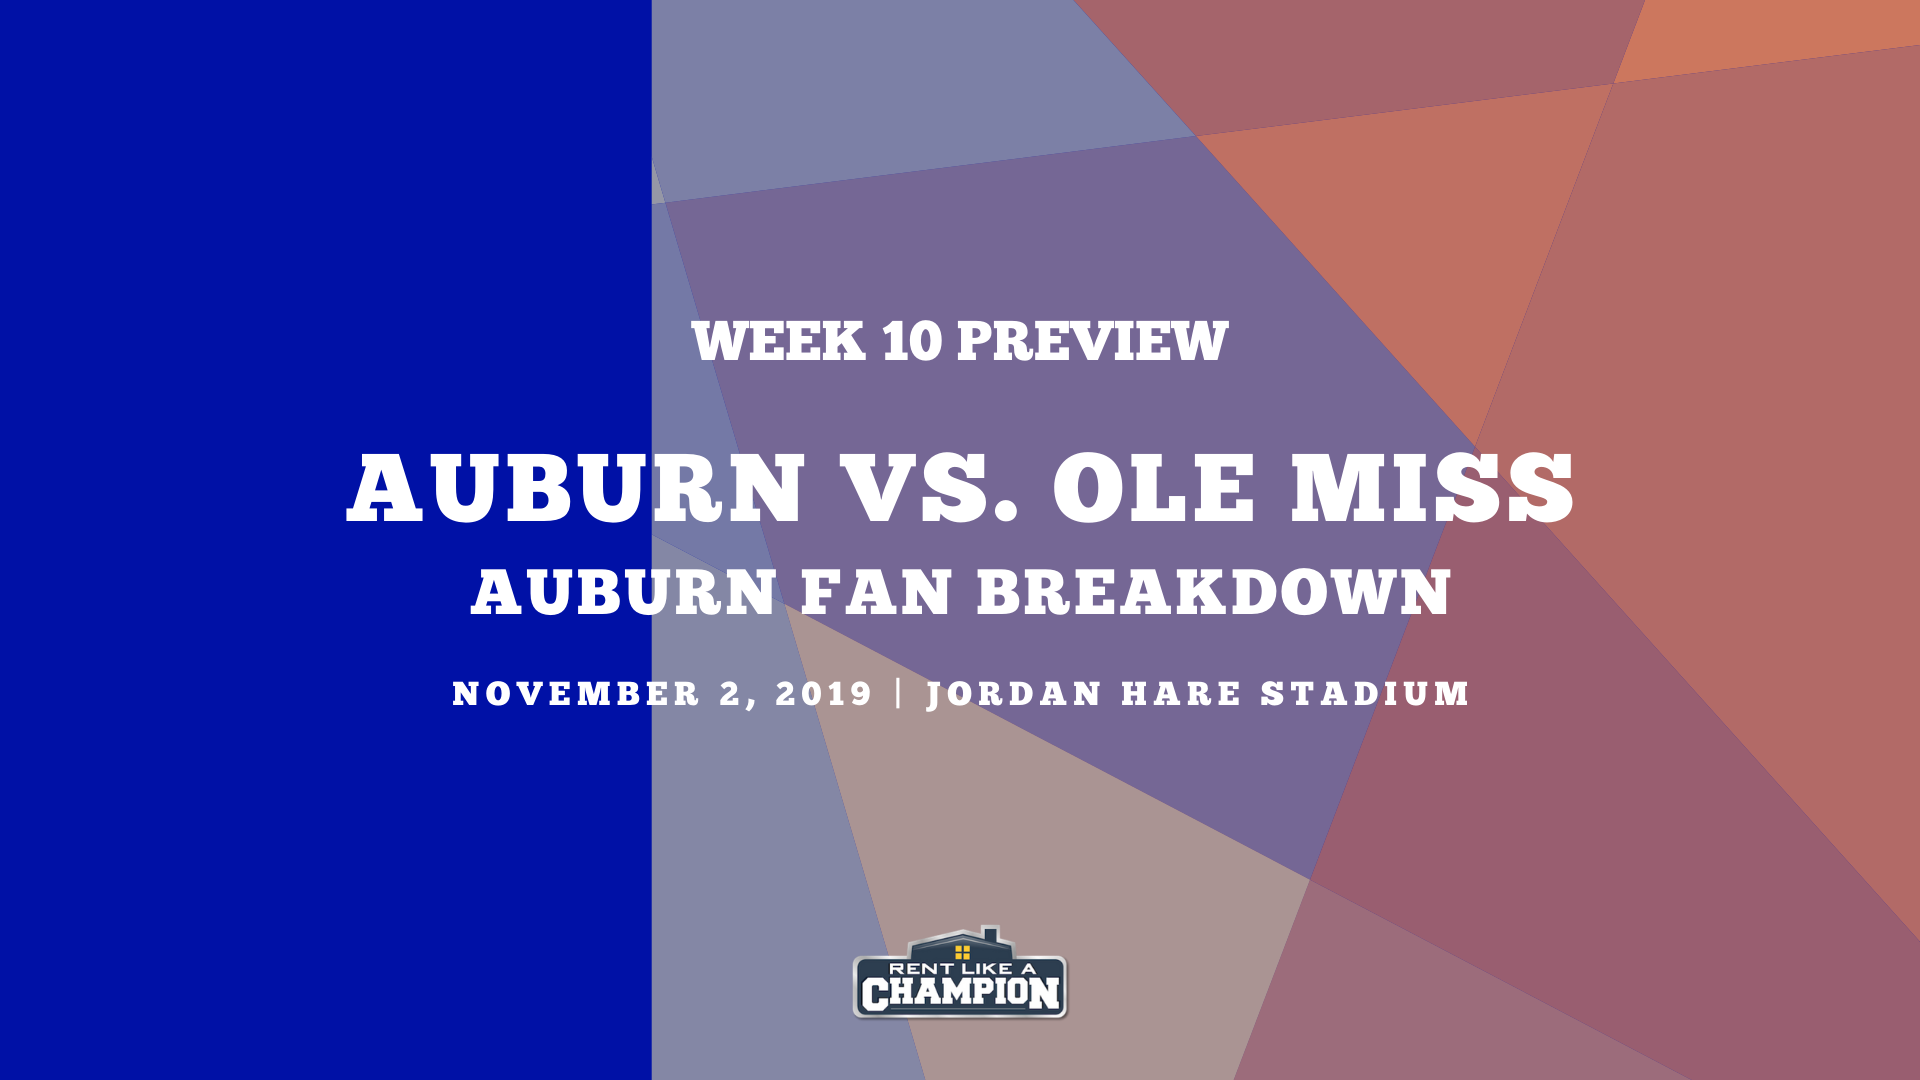 Auburn Game Preview Template for Ole Miss